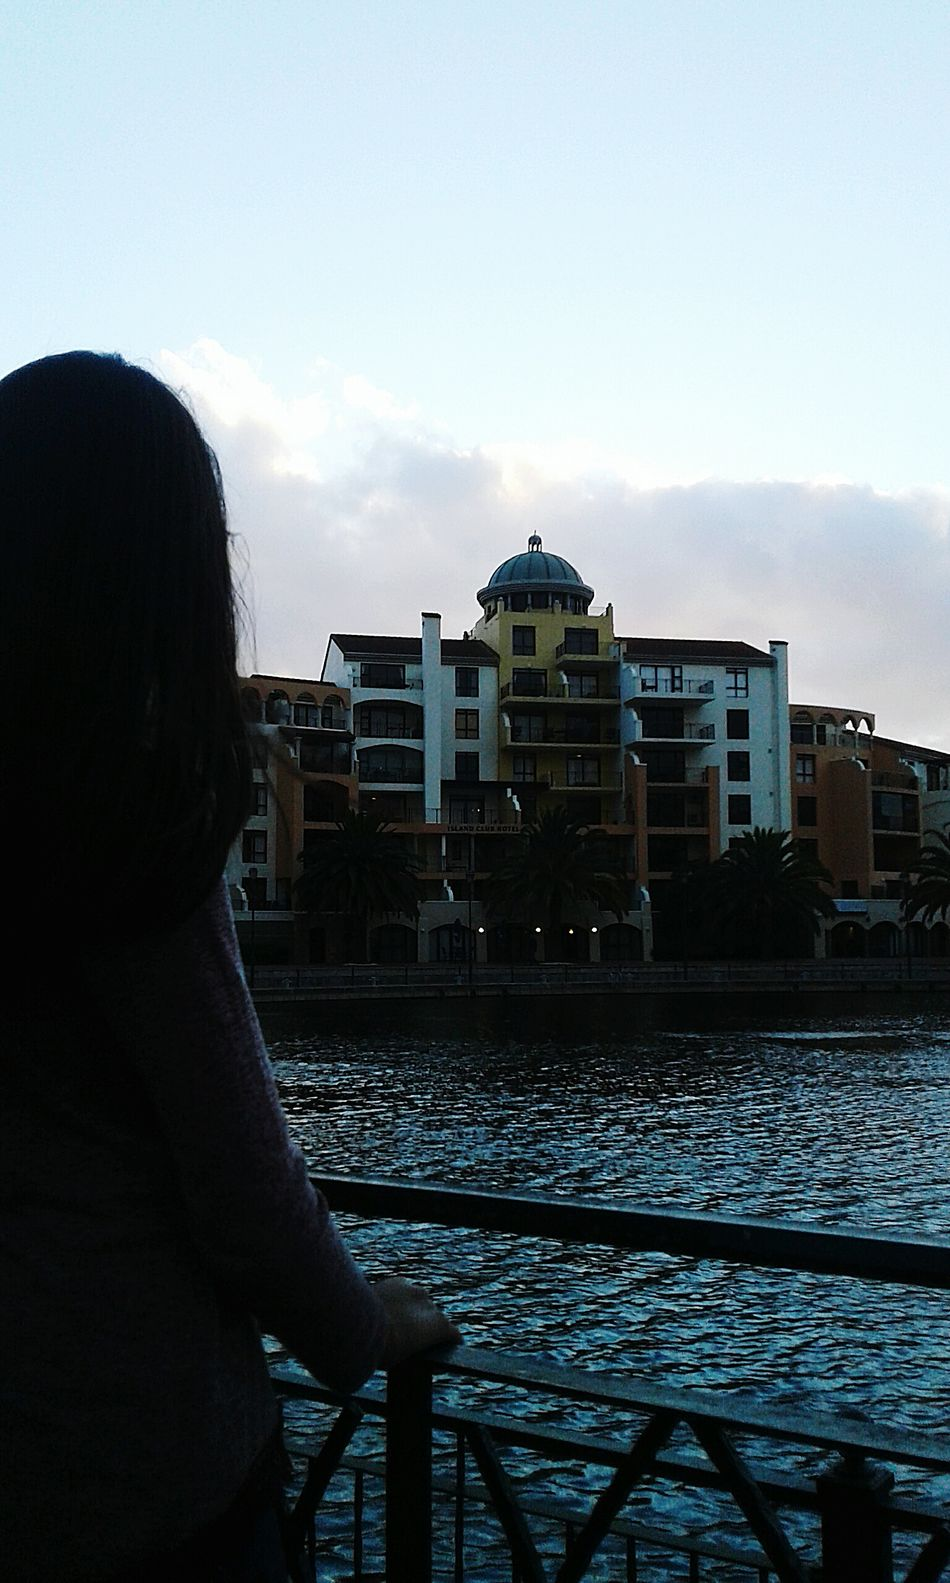 With my sister, shopping 😒 City One Person Built Structure Water Cloud - Sky Architecture Noob Inexperienced Outdoors River Mall